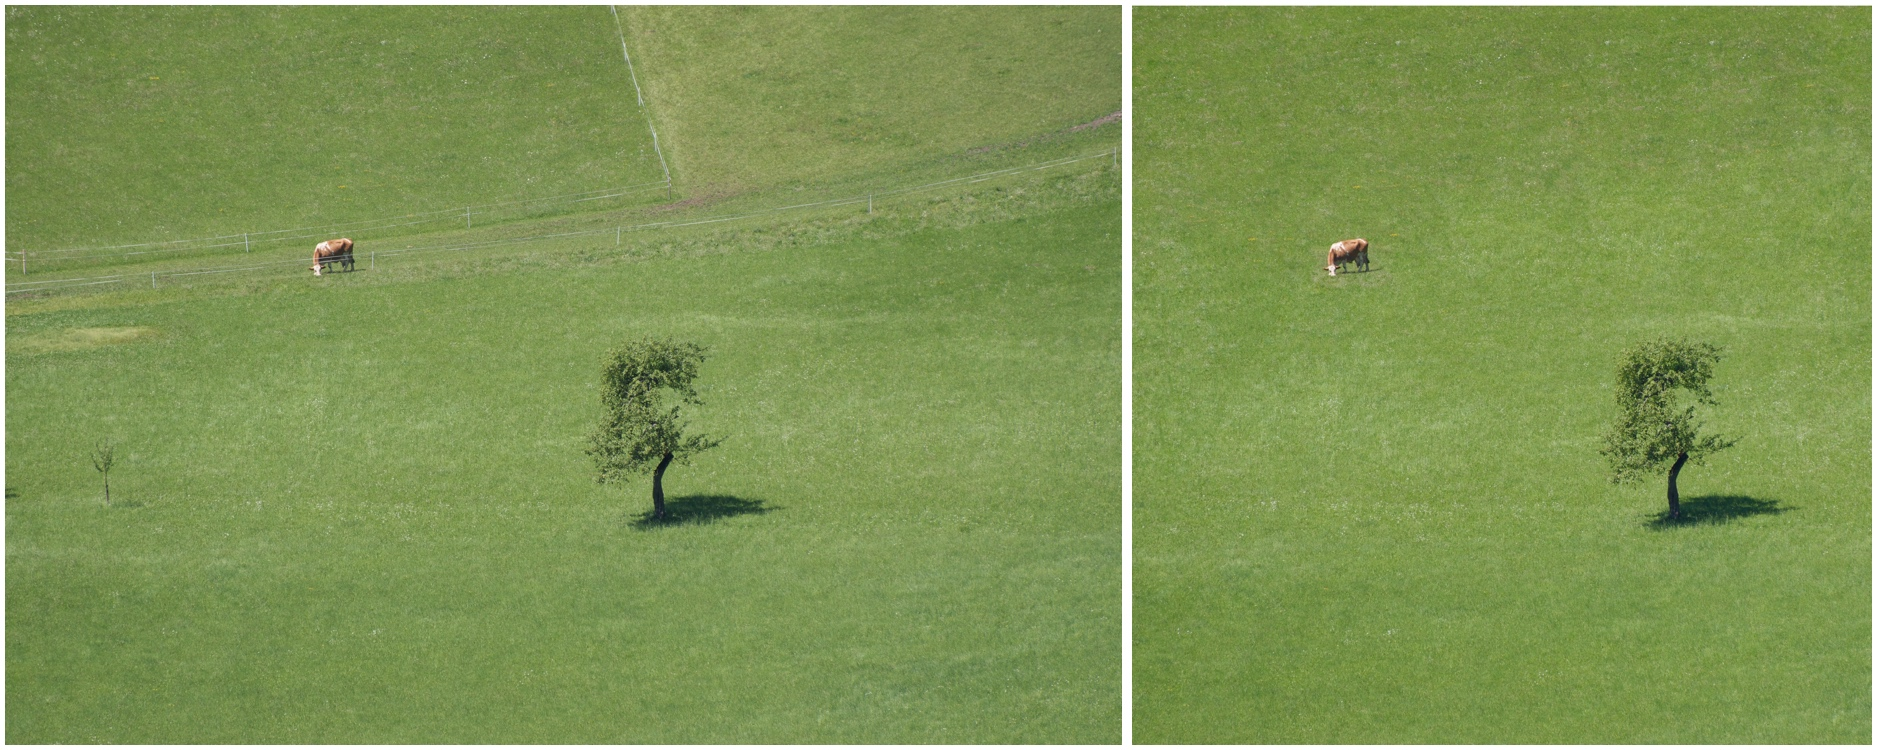 a-cow-and-a-tree-pixelmator-healing-brush-before-and-after.jpg